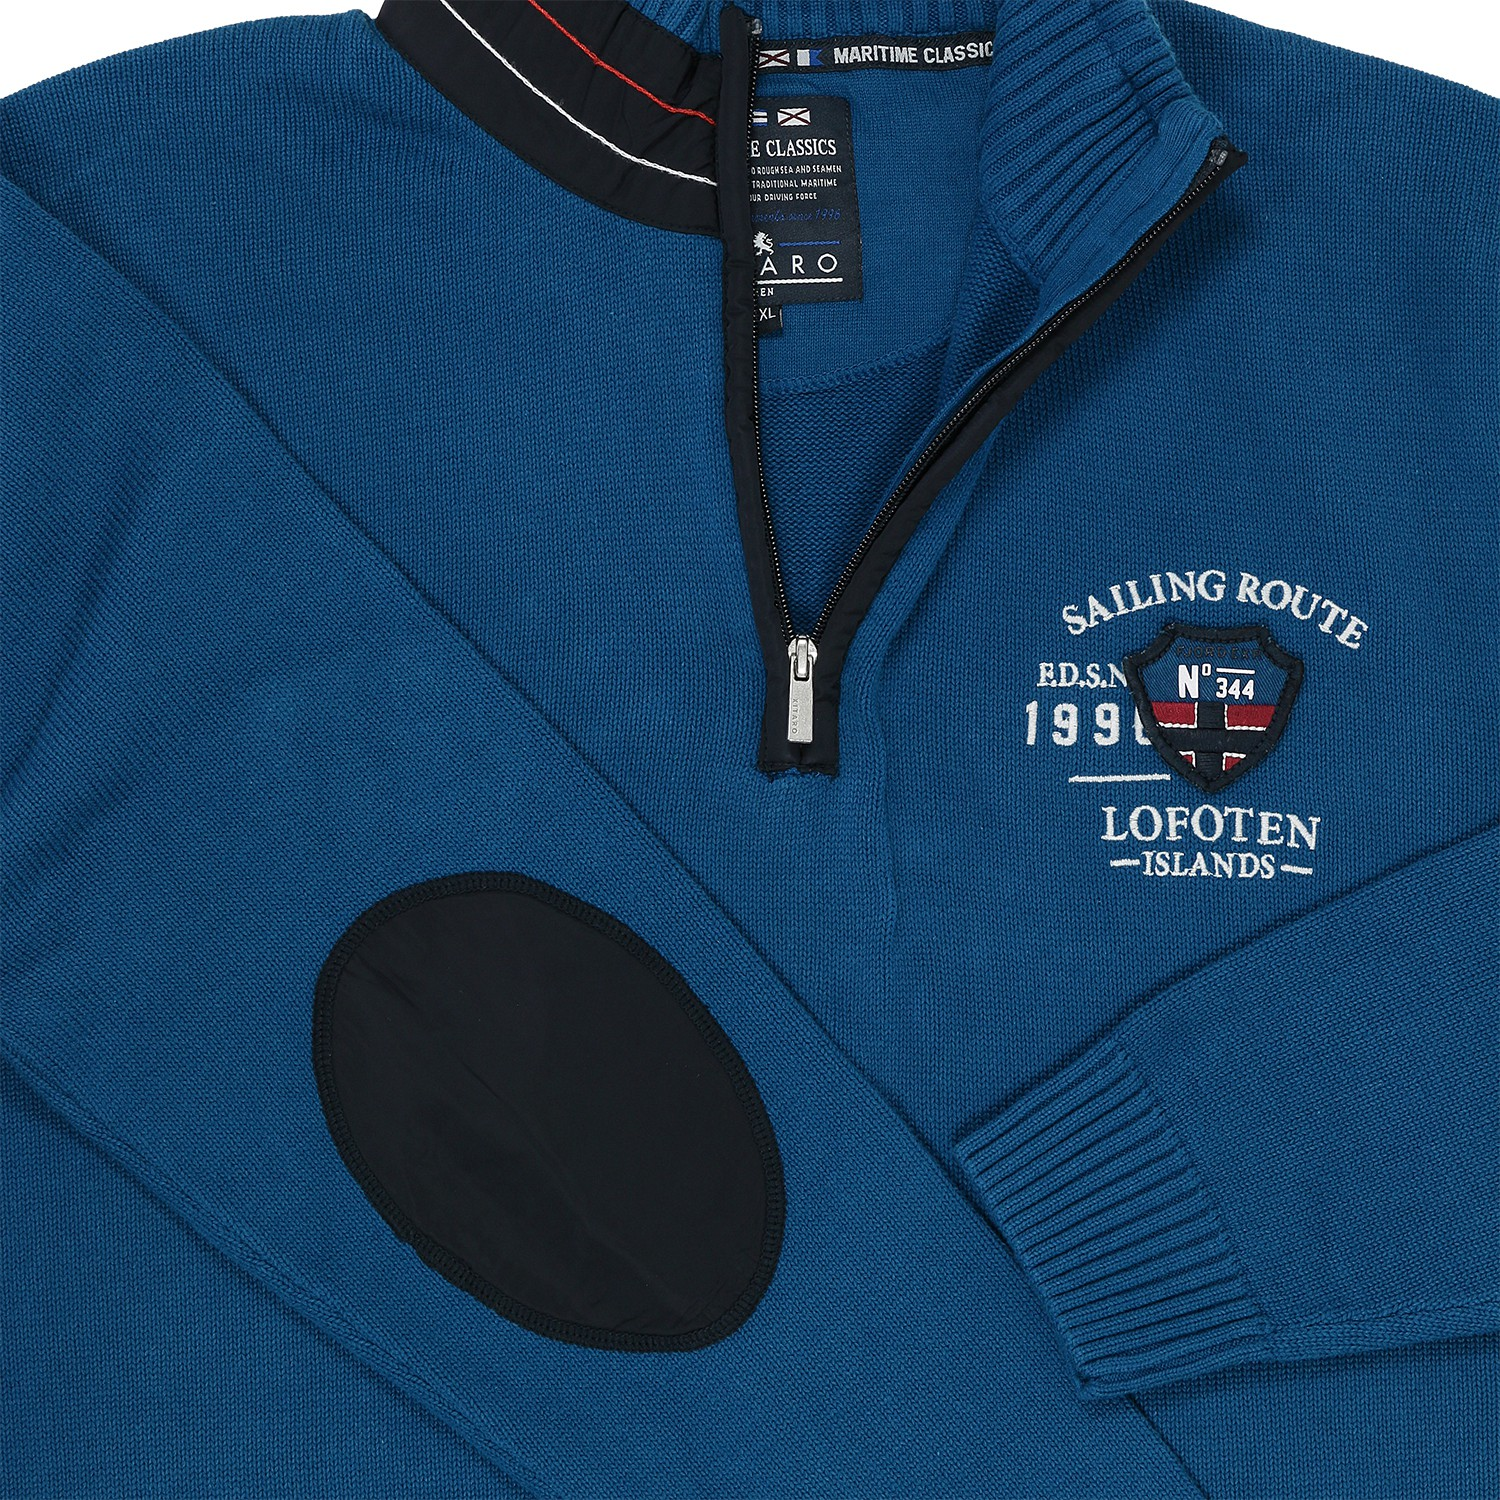 Detail Image to Pullover by Kitaro in large sizes up to 5XL - blue